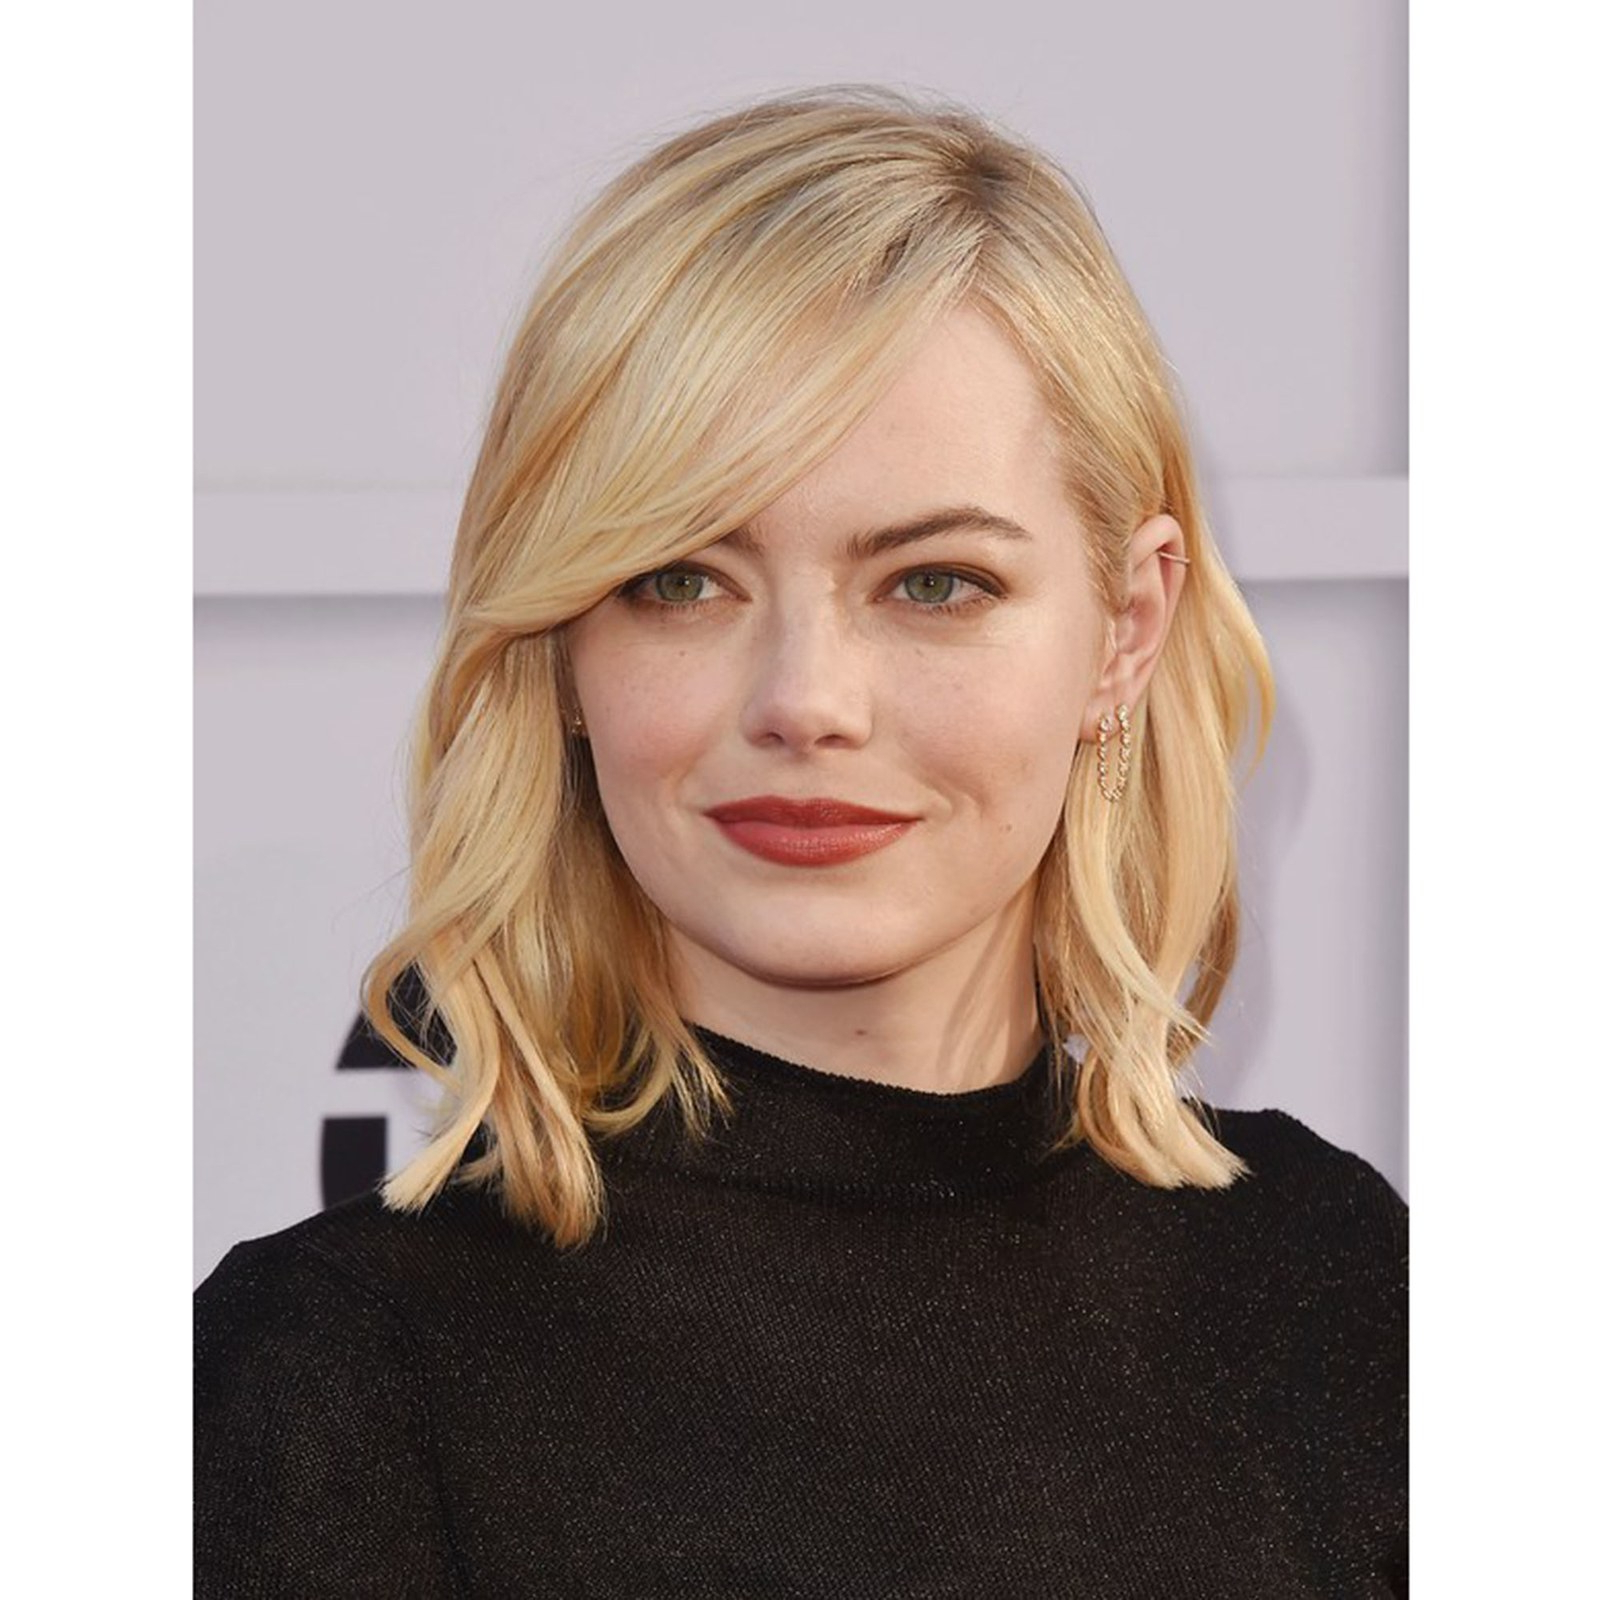 The 9 Best Haircuts For Round Faces, According To Stylists – Allure With Regard To Short Hairstyles With Bangs For Round Face (View 20 of 25)